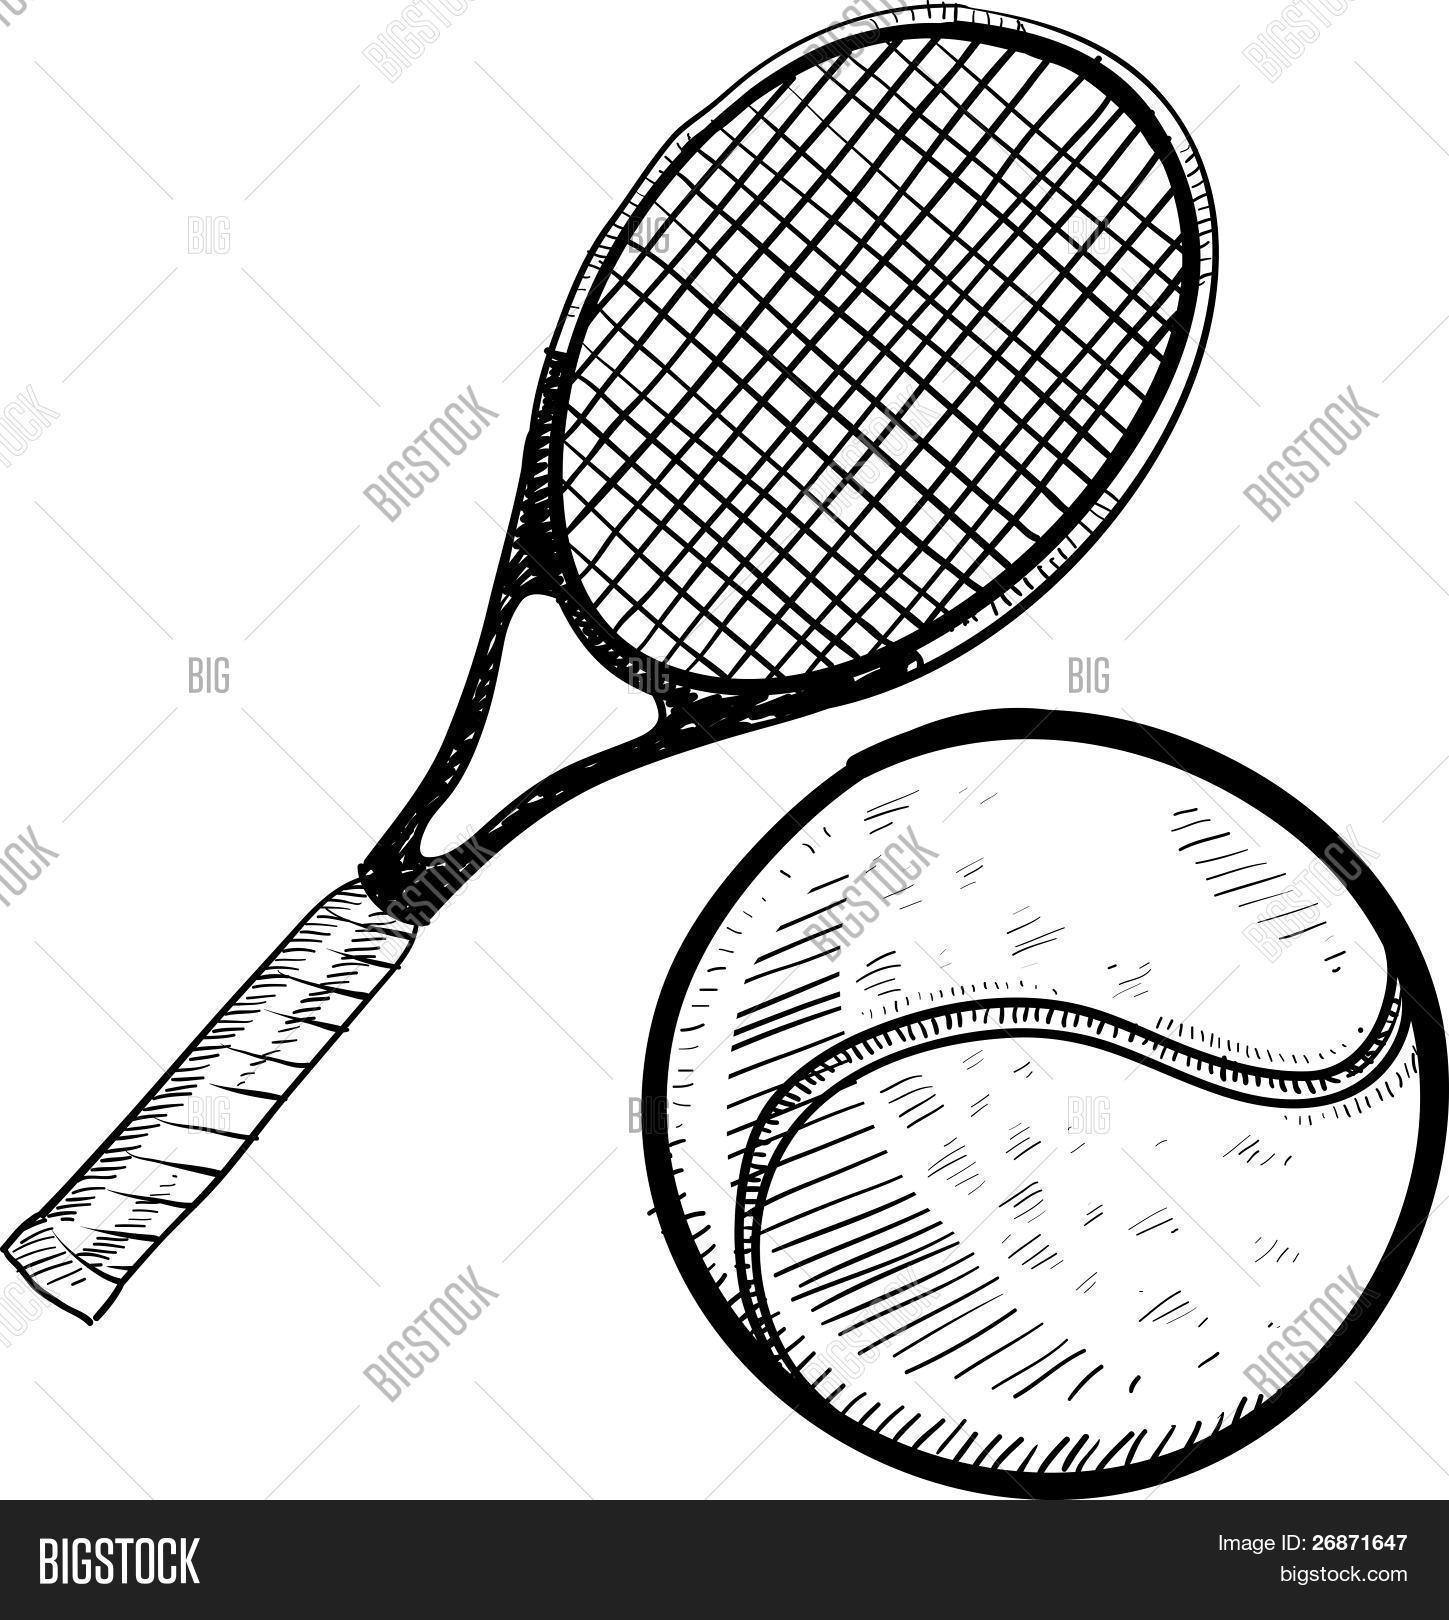 1449x1620 Tennis Ball Racket Sketch Vector Amp Photo Bigstock